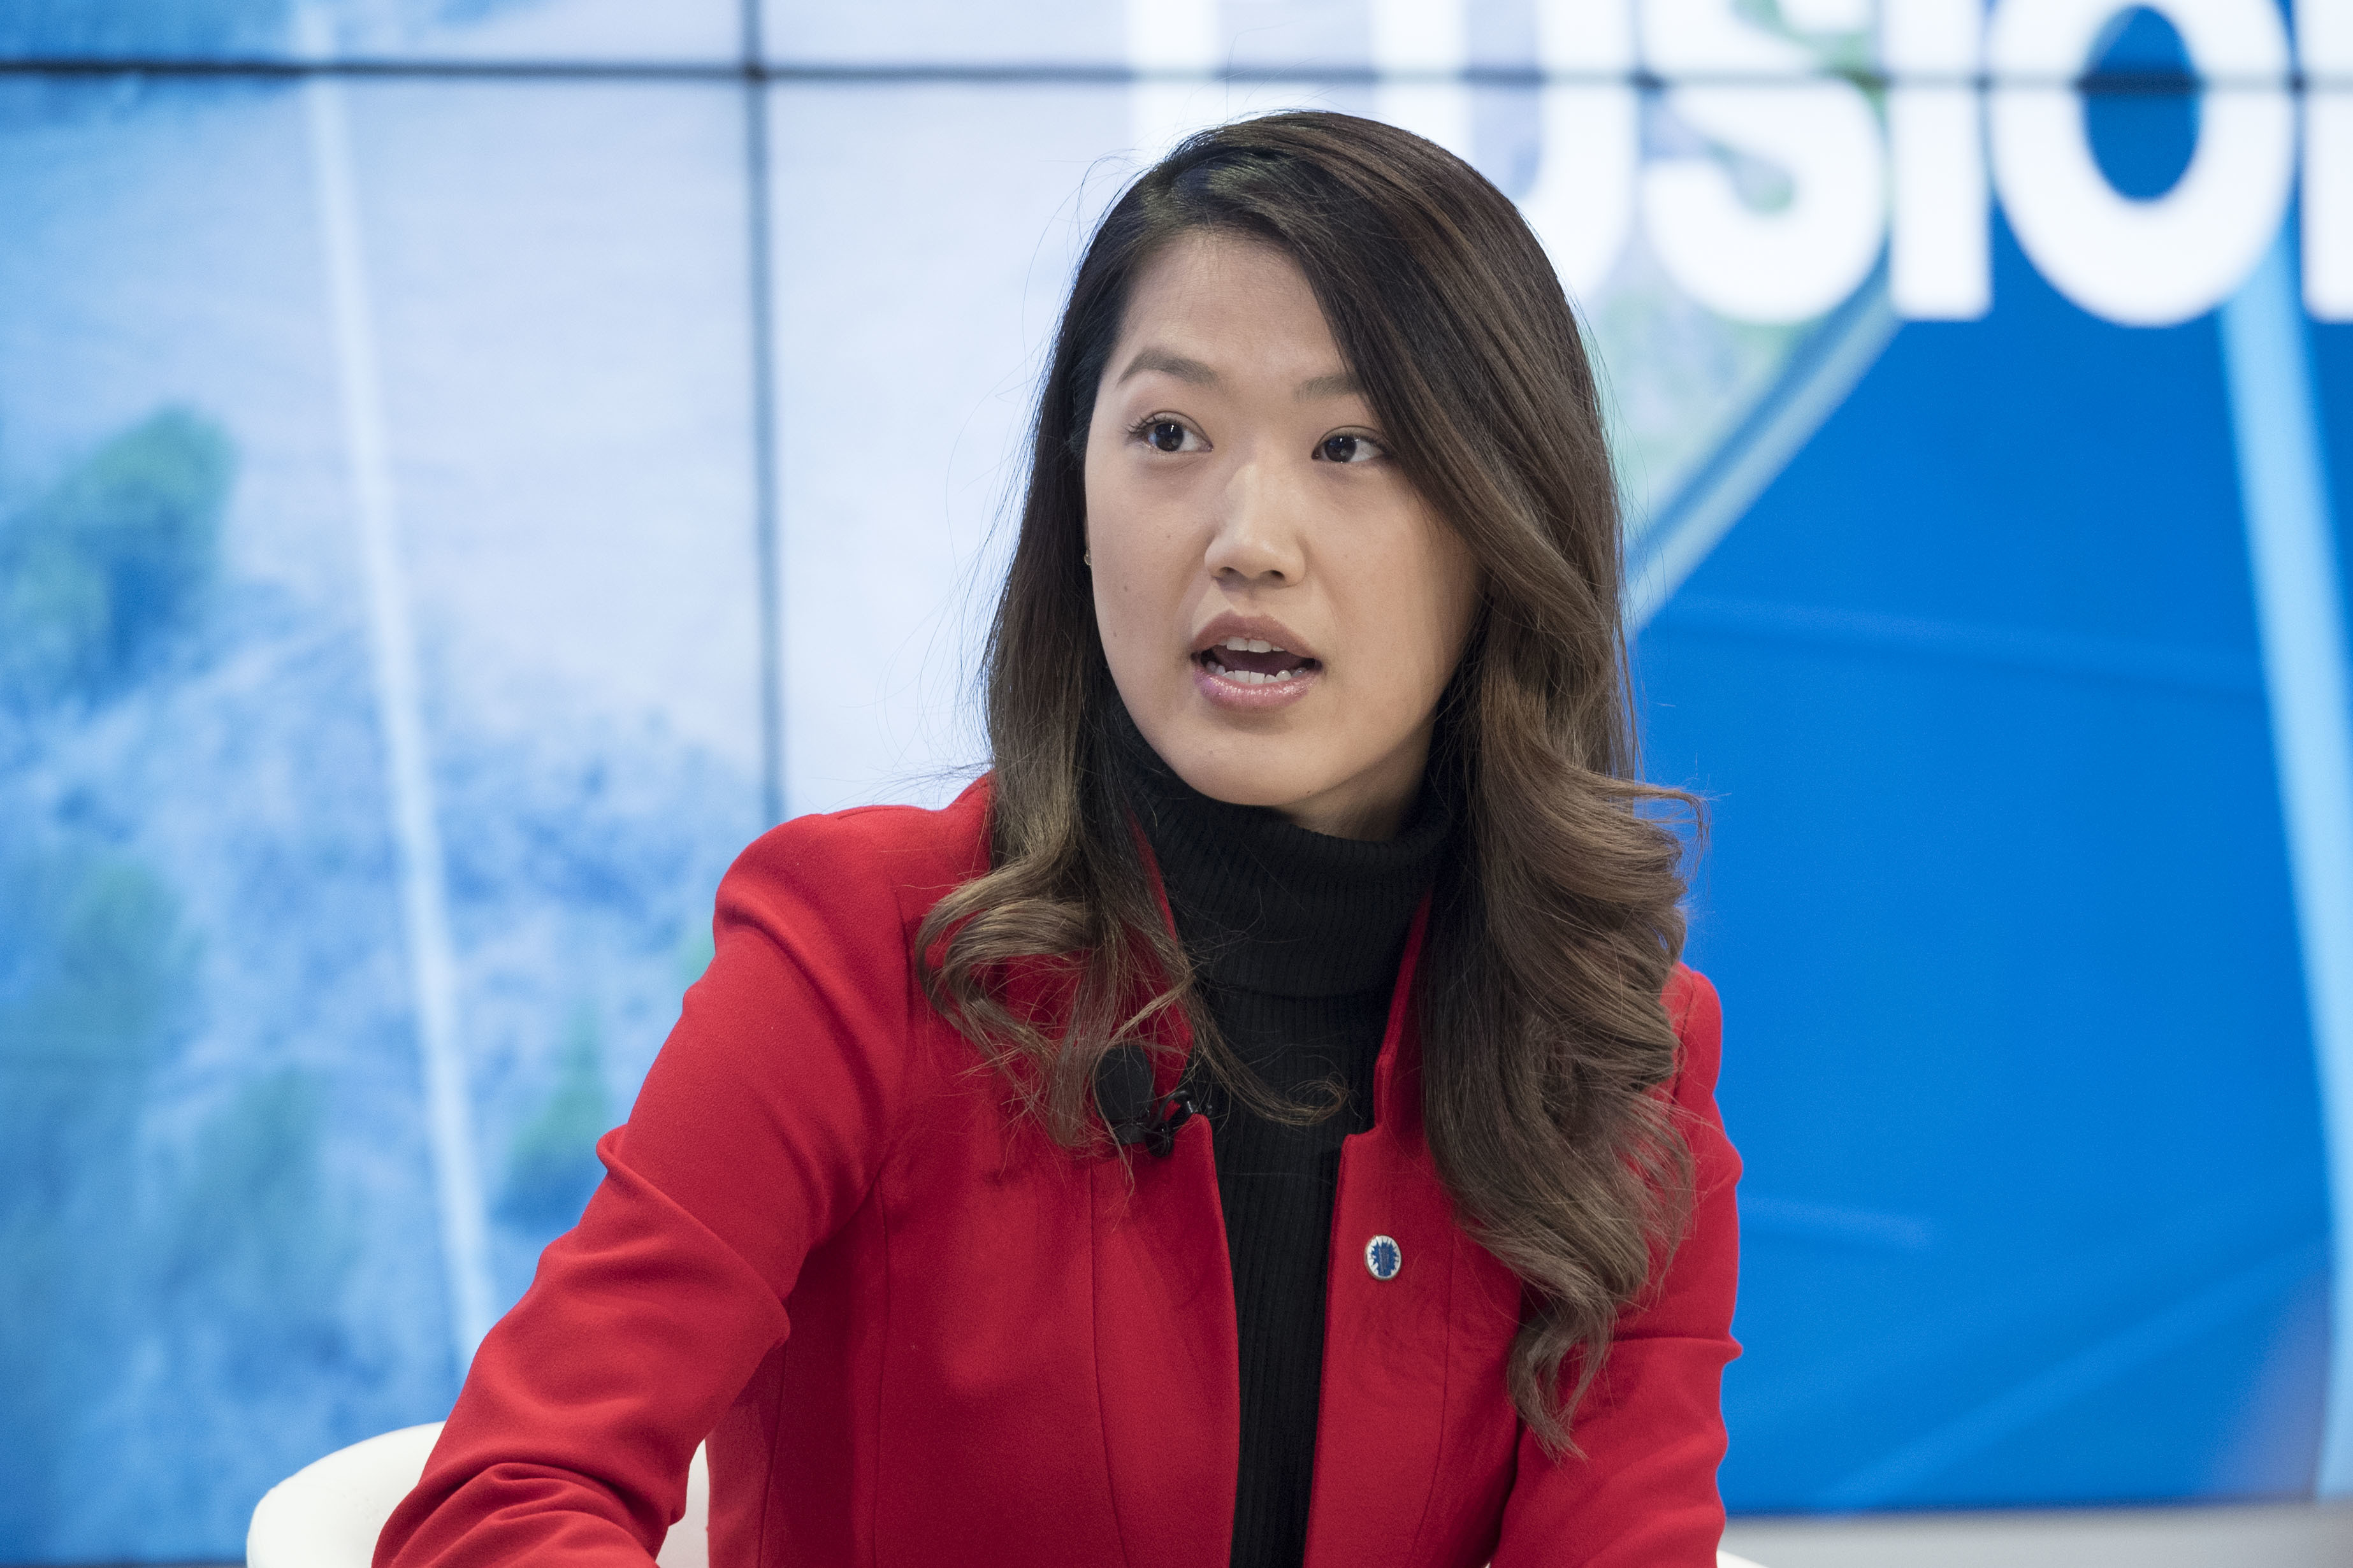 Kwiri Yang, Founder and Chief Executive Officer, Socha Connect, USA speaks during the Bridges vs Borders: The Migration Dilemma Session at the Annual Meeting 2018 of the World Economic Forum in Davos, January 26, 2018. Copyright by World Economic Forum / Valeriano Di Domenico